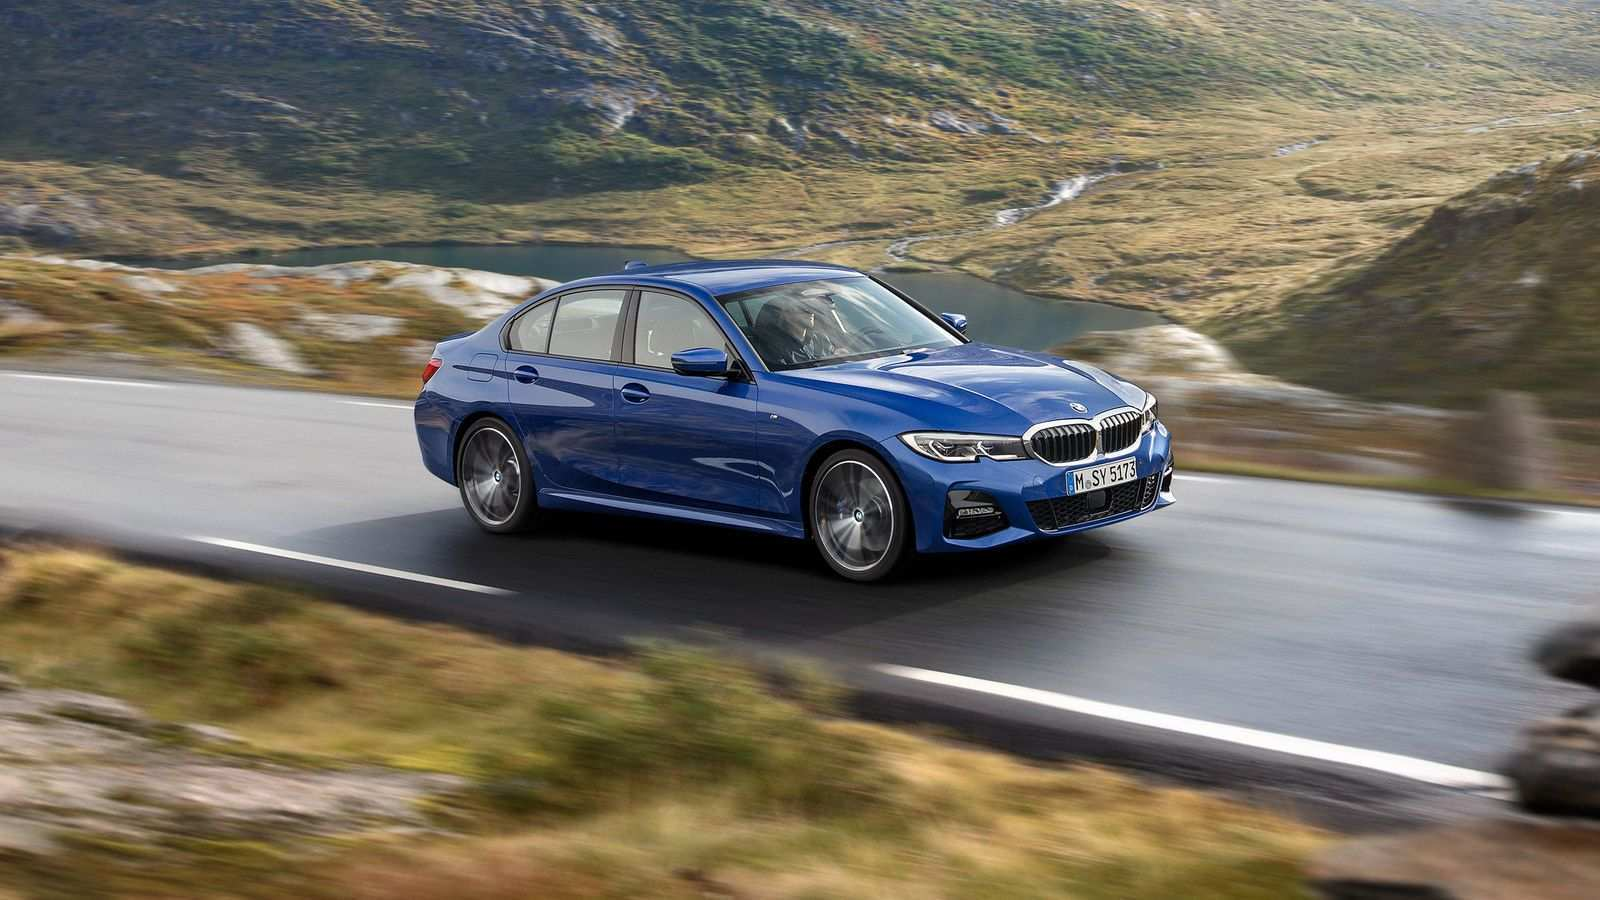 35 New 2019 Bmw 3 Series G20 Price And Review